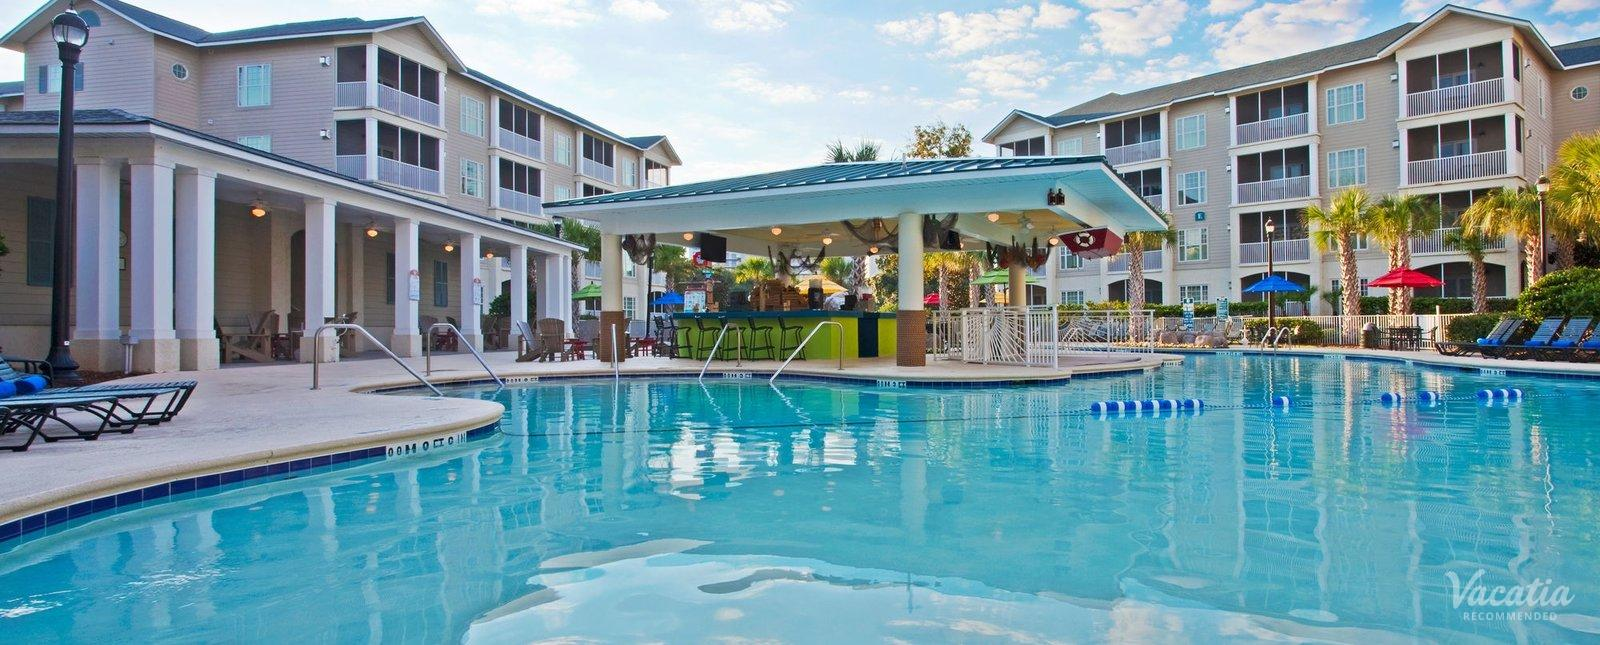 Holiday Inn Club Vacations Myrtle Beach South Beach family friendly pool